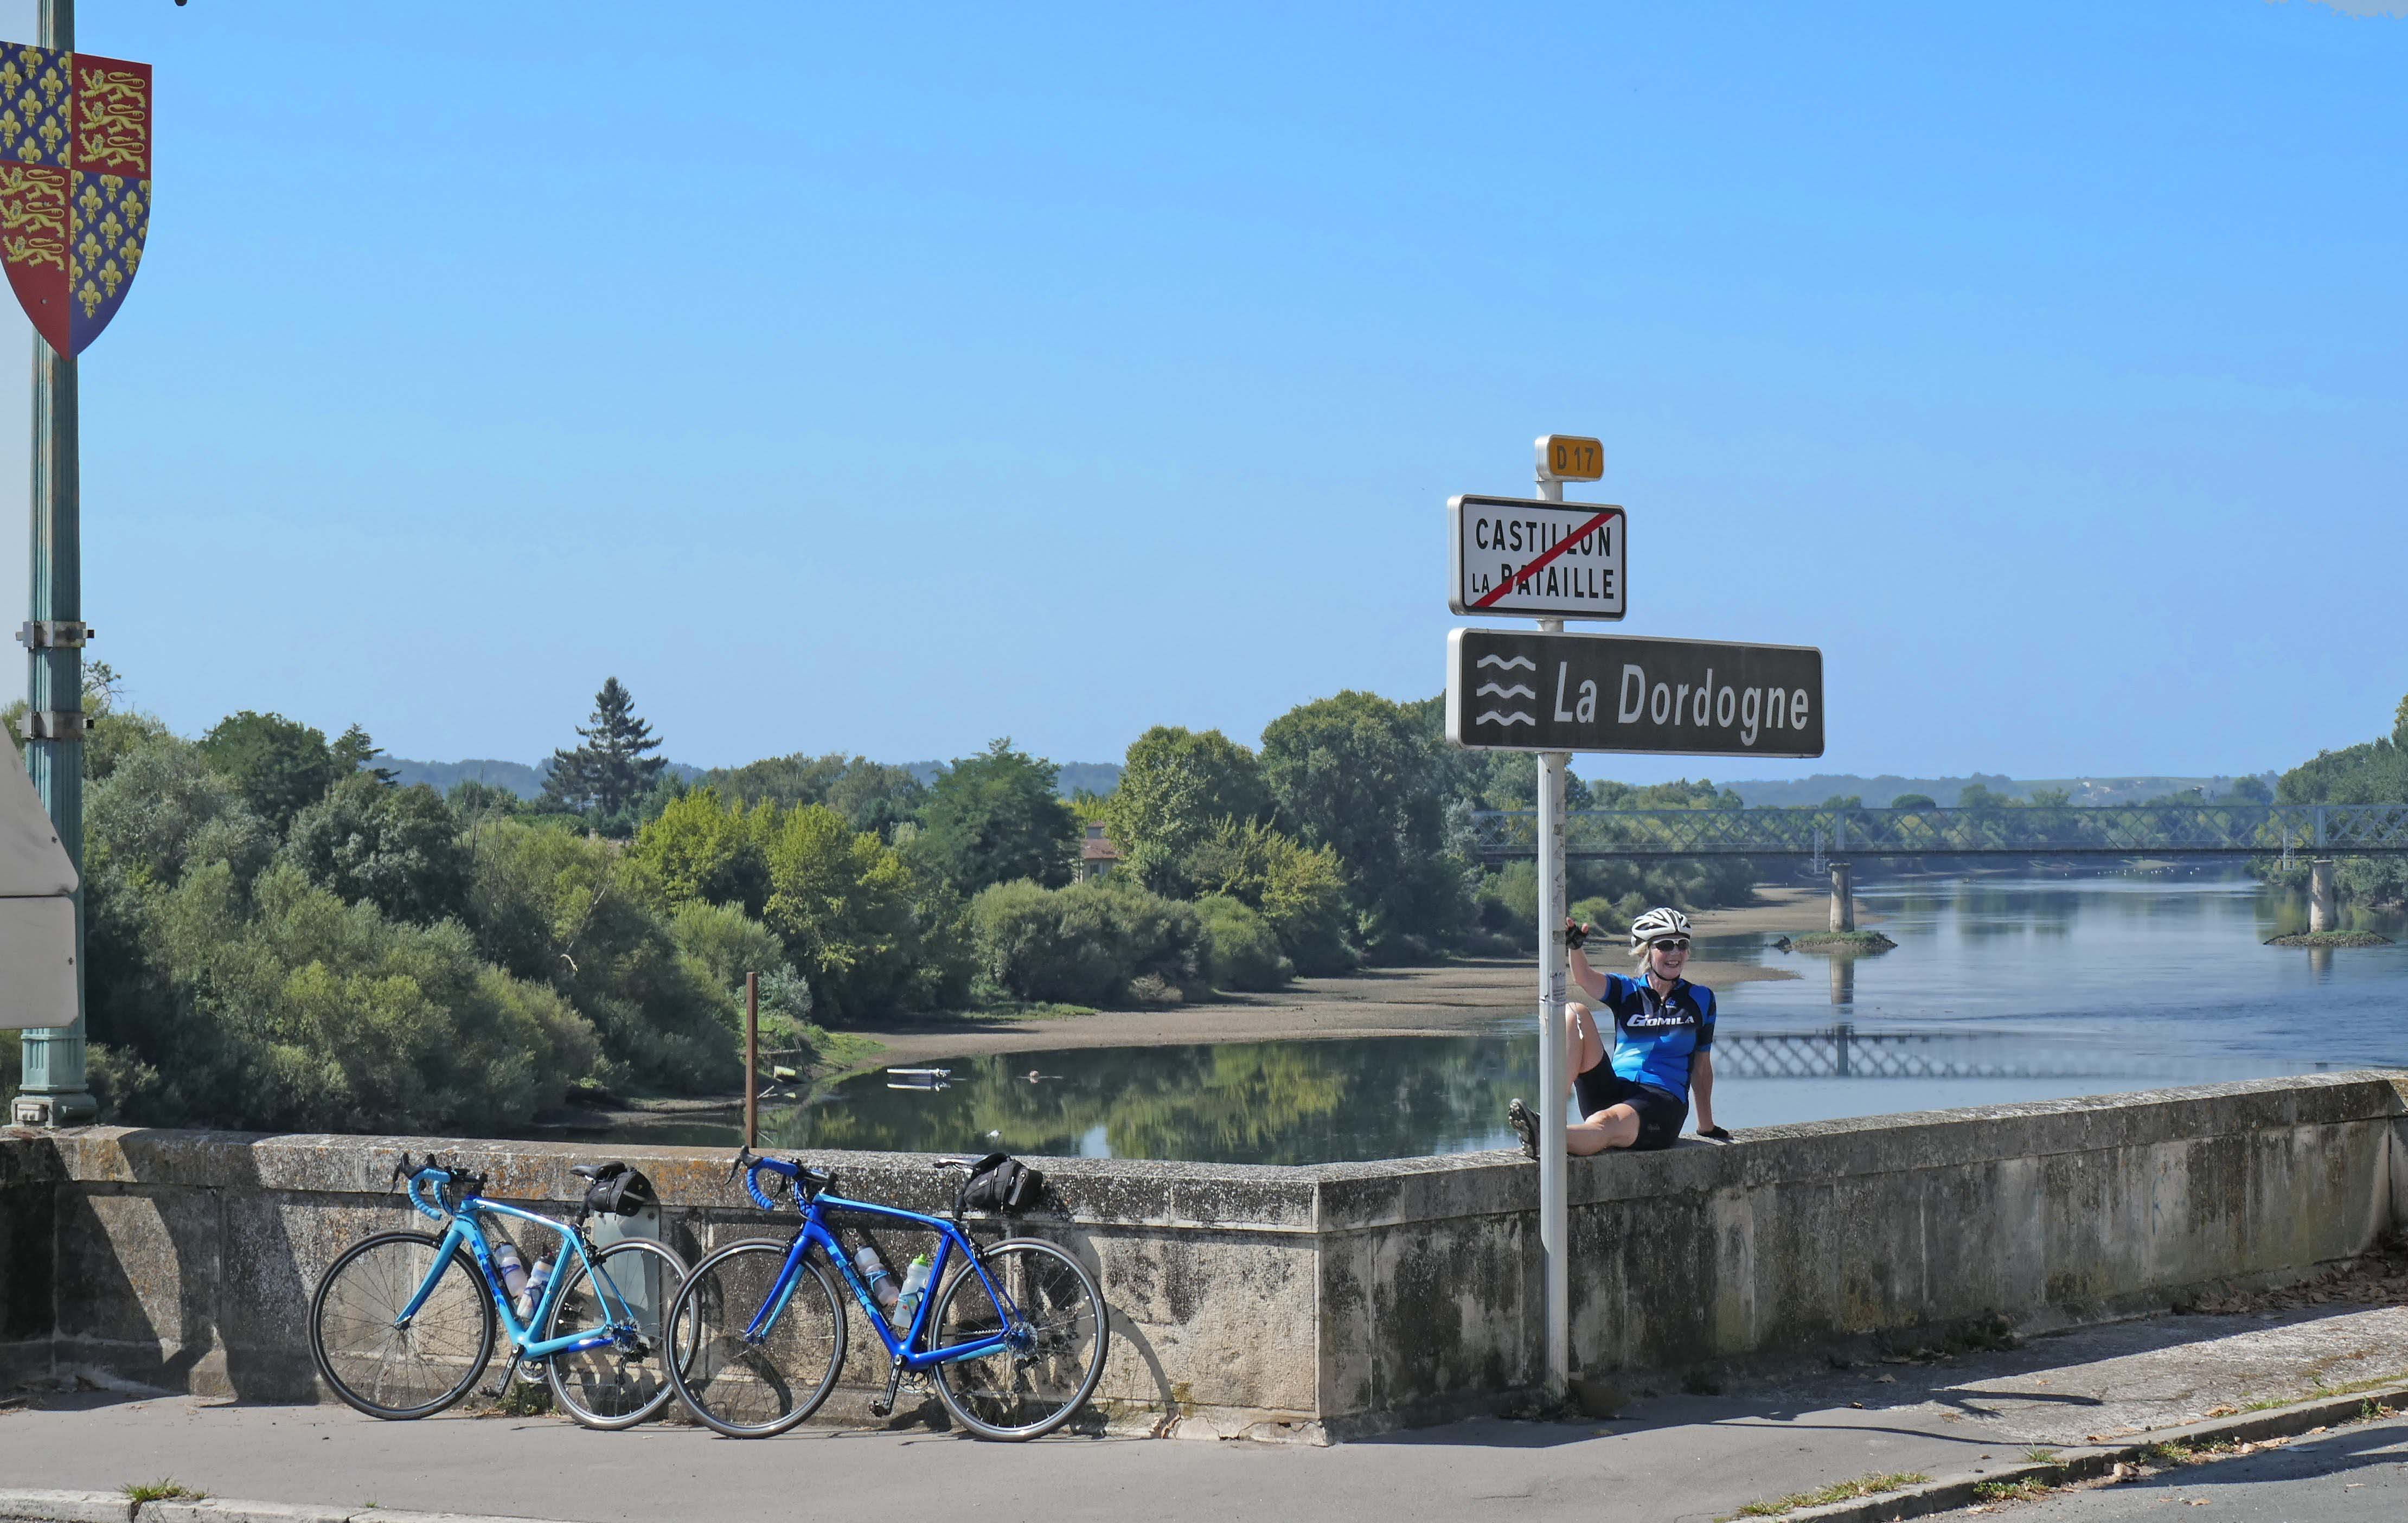 Crossing the Dordogne, one of France's great rivers